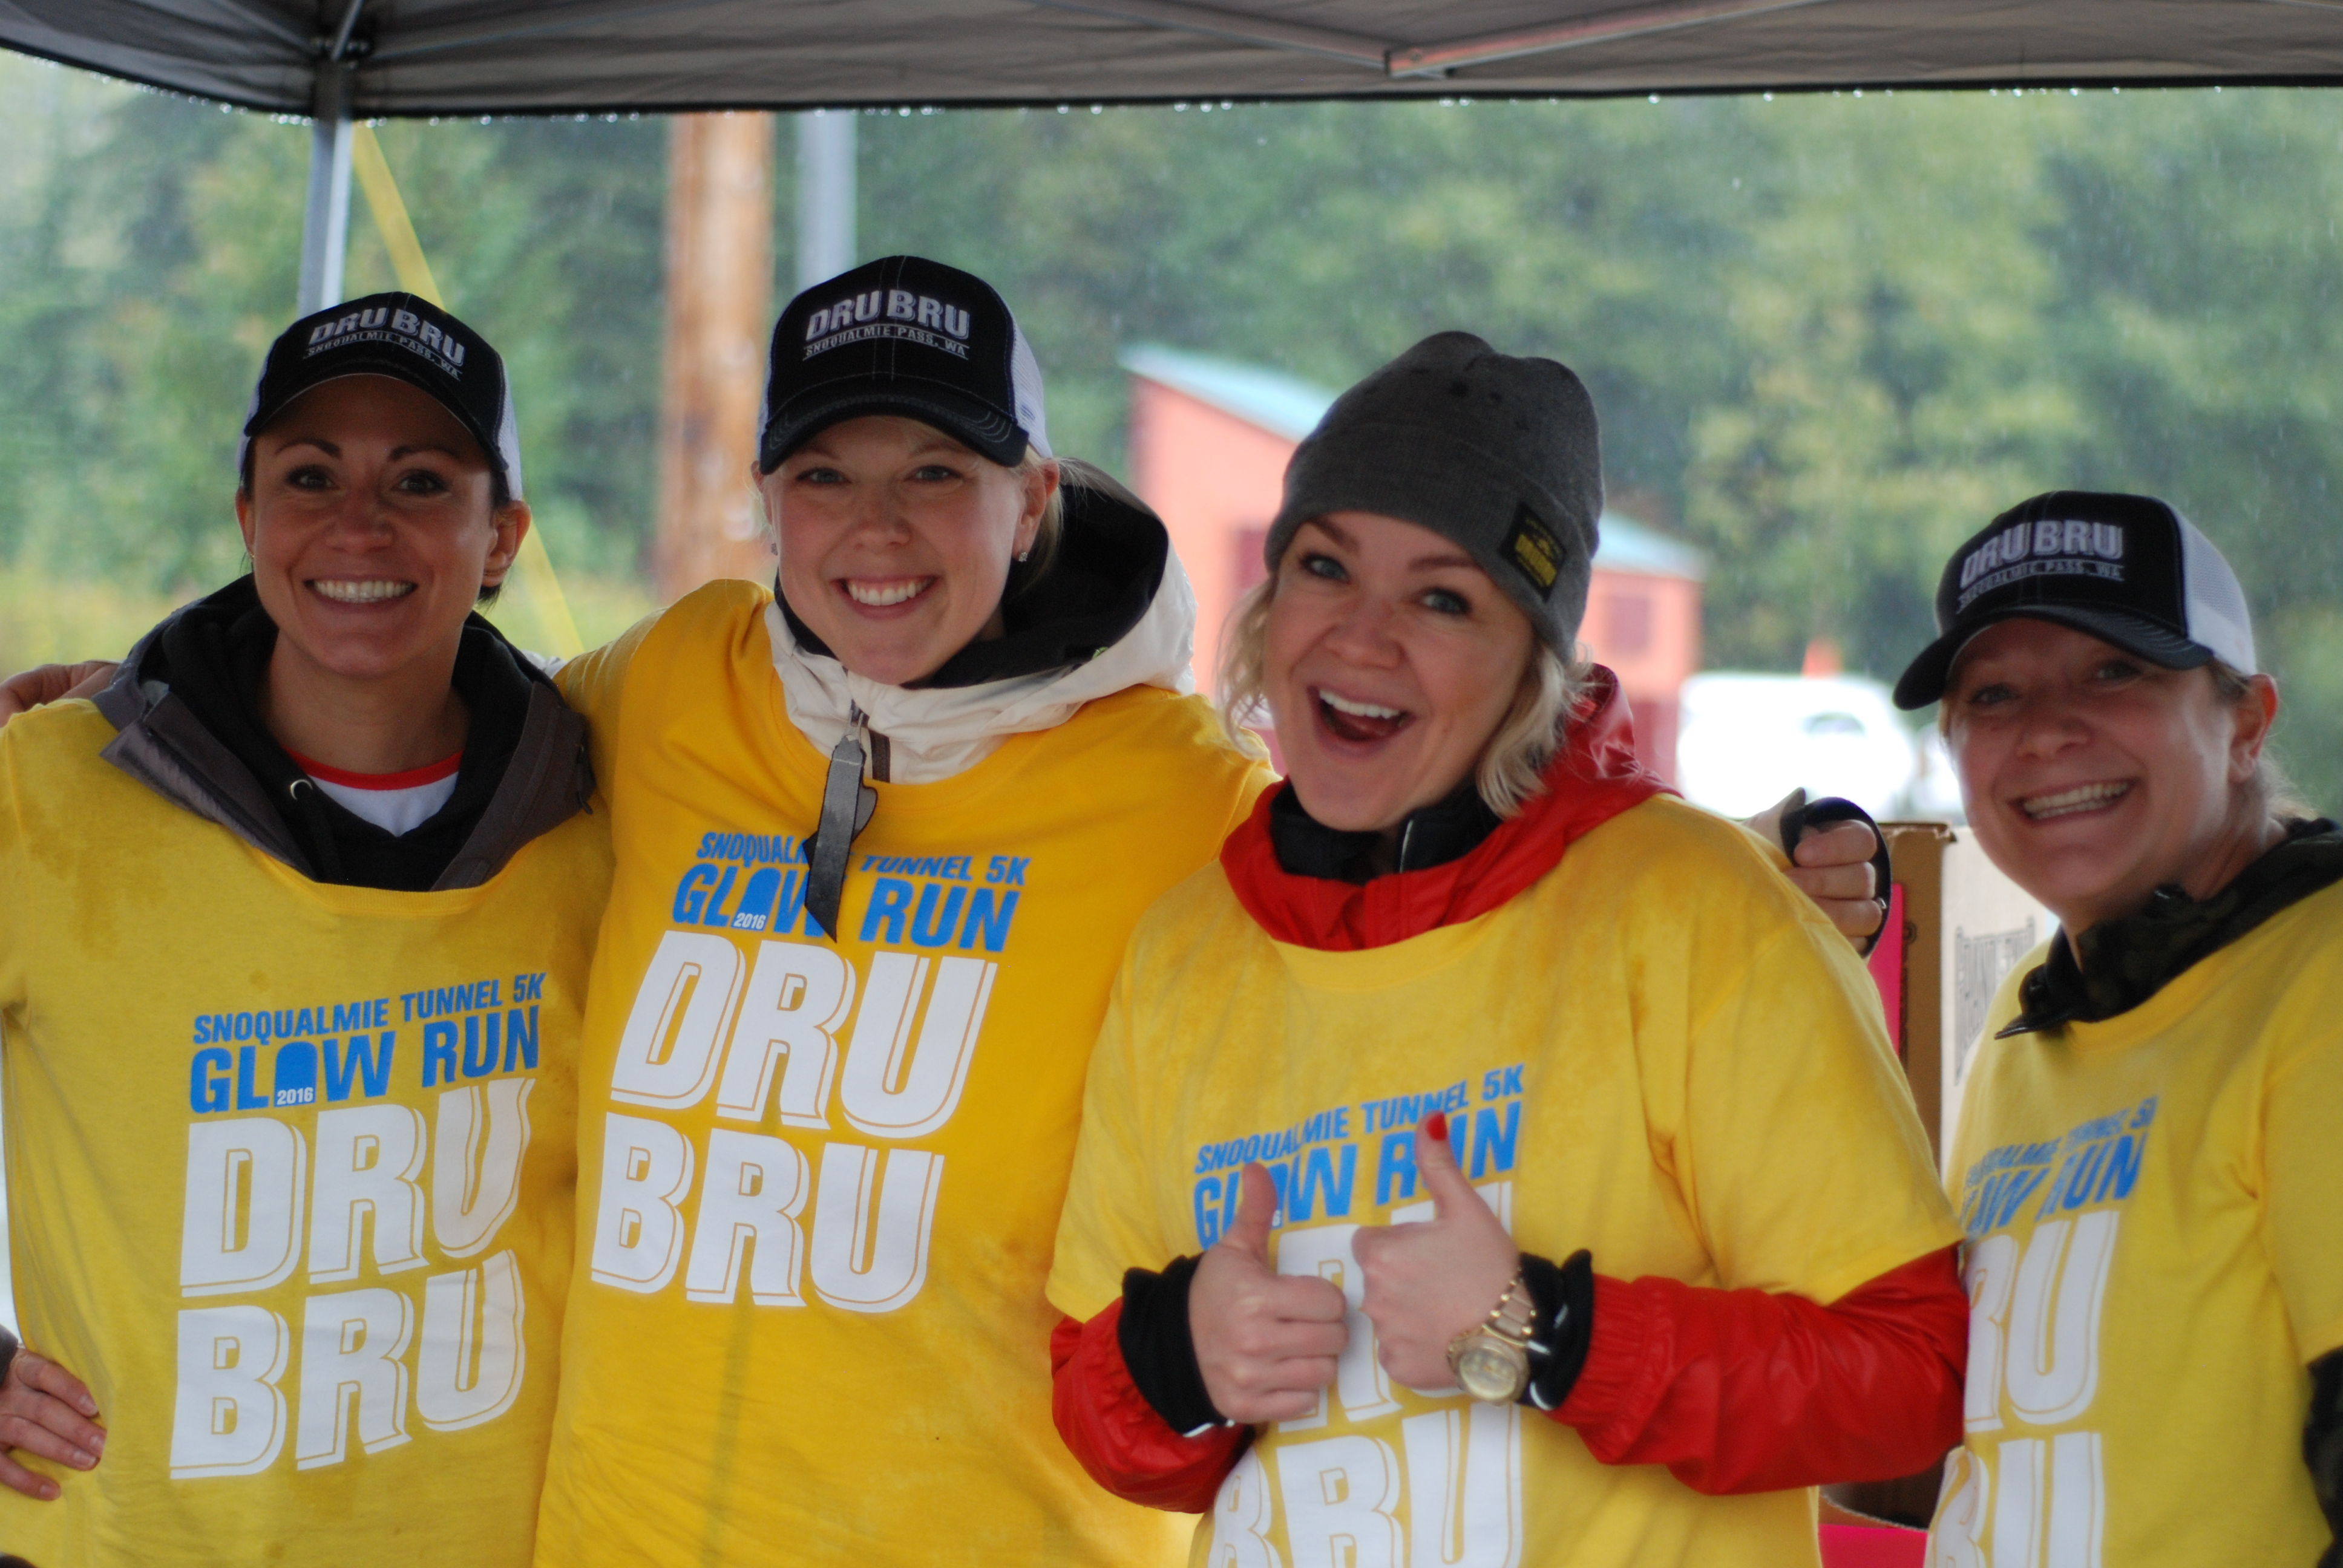 Custom T Shirts For Dru Bru 5k Snoqualmie Tunnel Glow Run Shirt